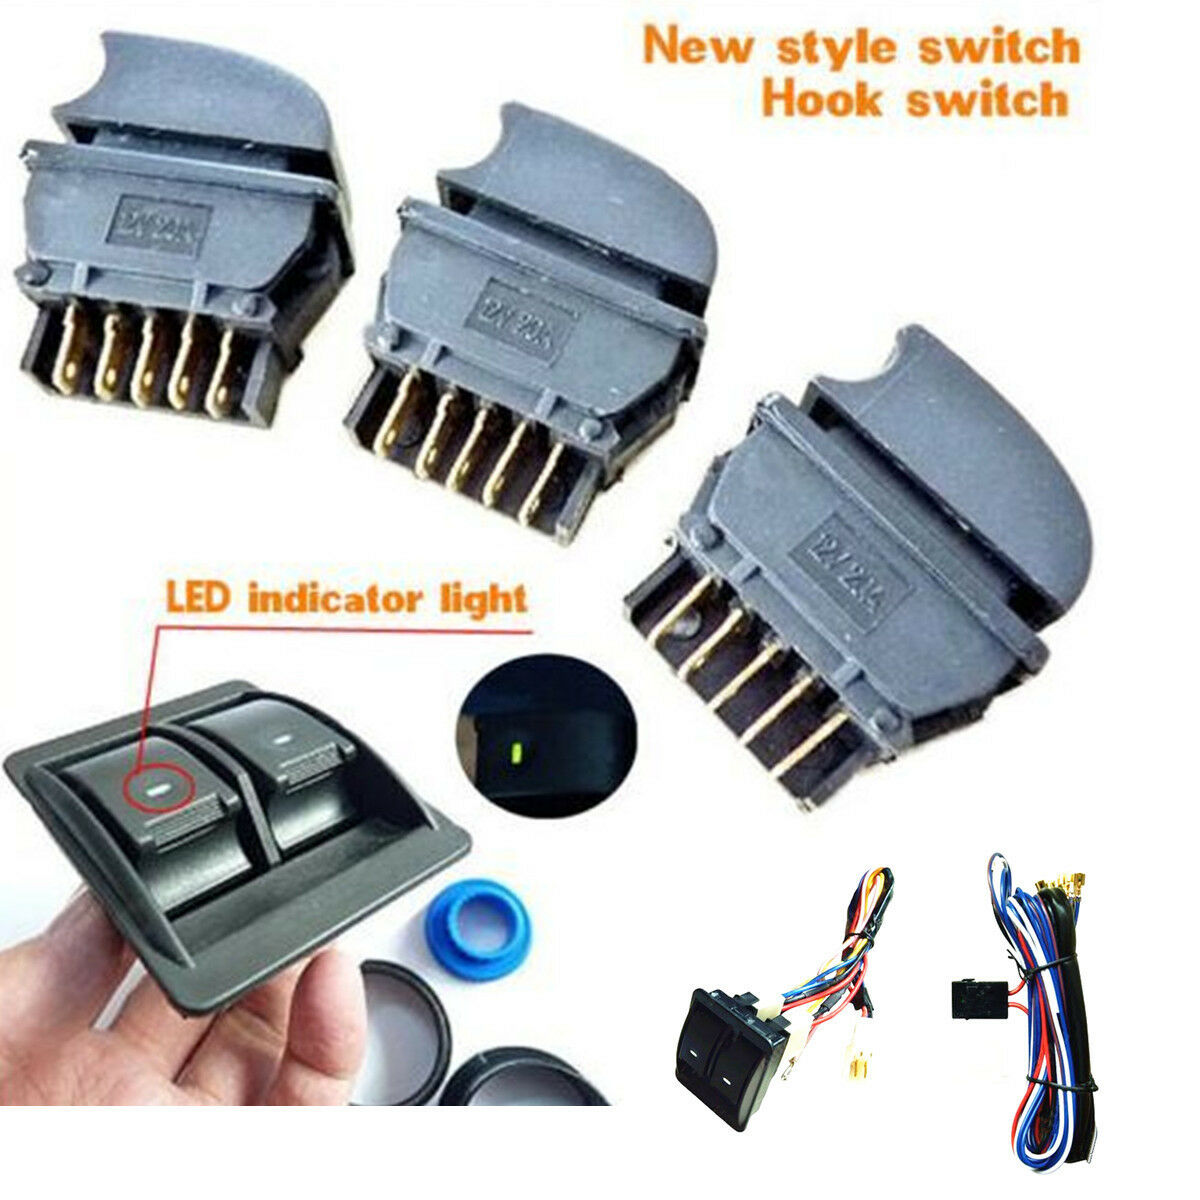 s l1600 12v car power window switch with wire harness universal kits universal 12 volt wiring harness at crackthecode.co